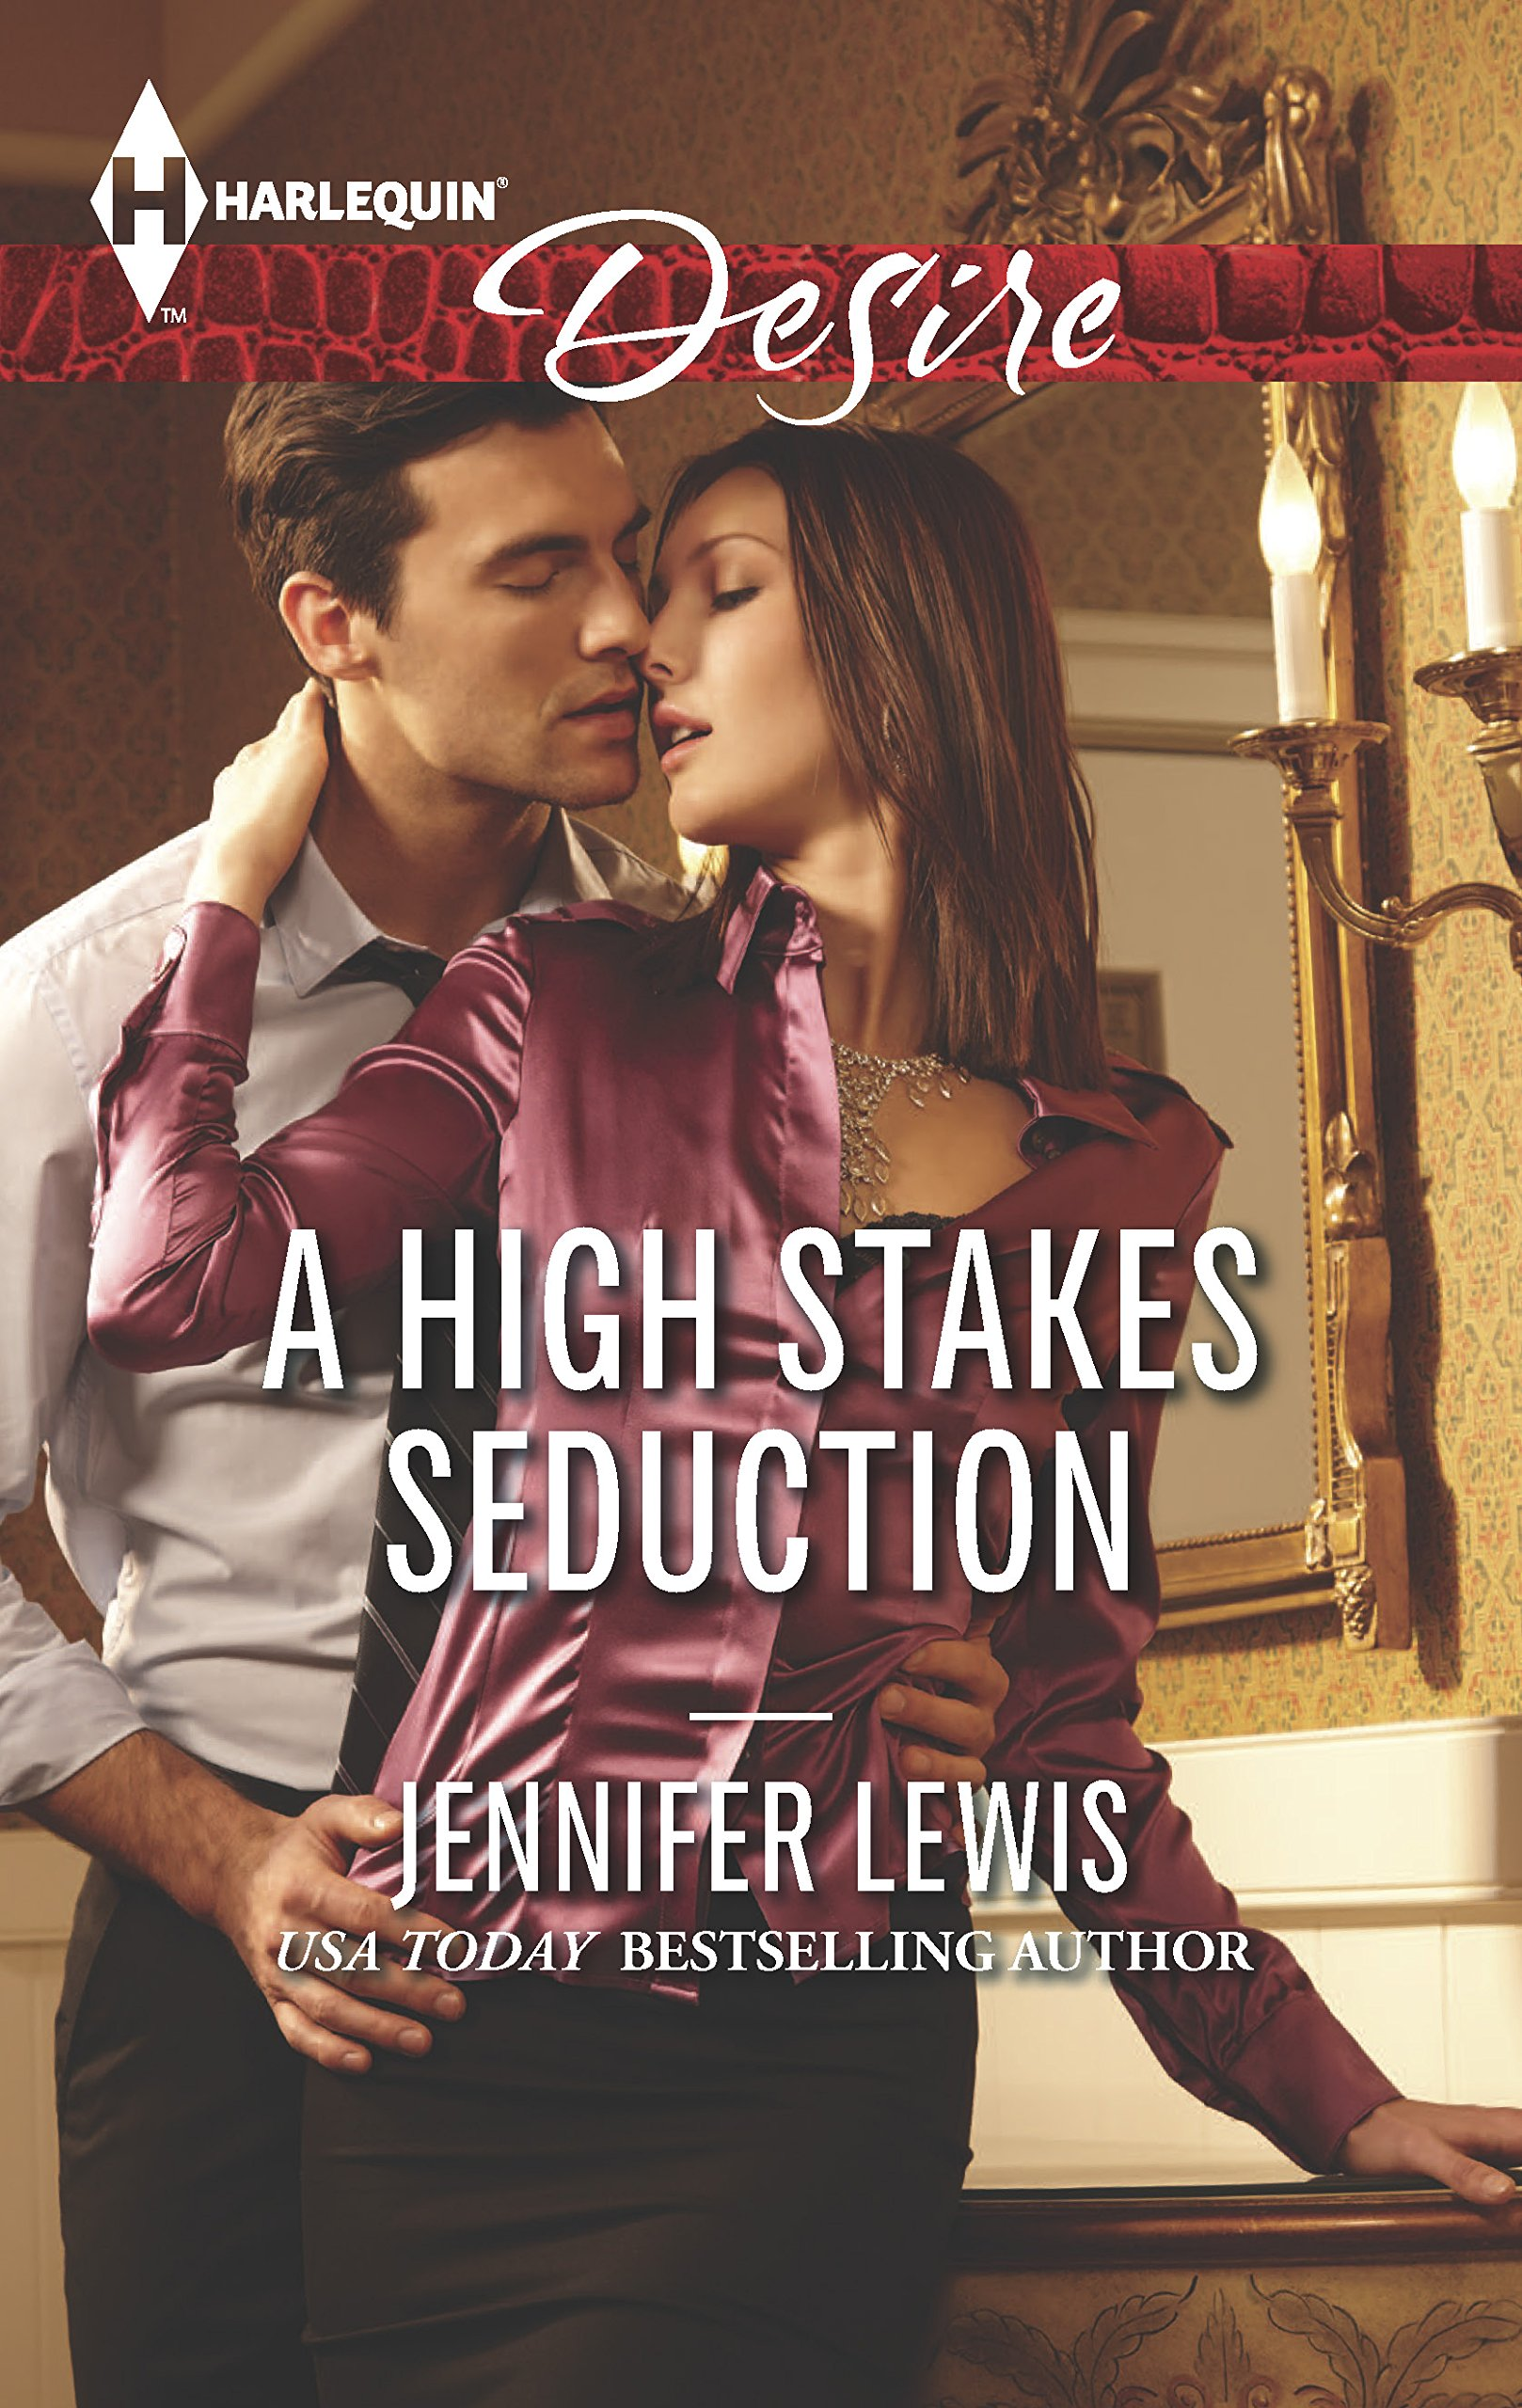 A High Stakes Seduction (Harlequin Desire)